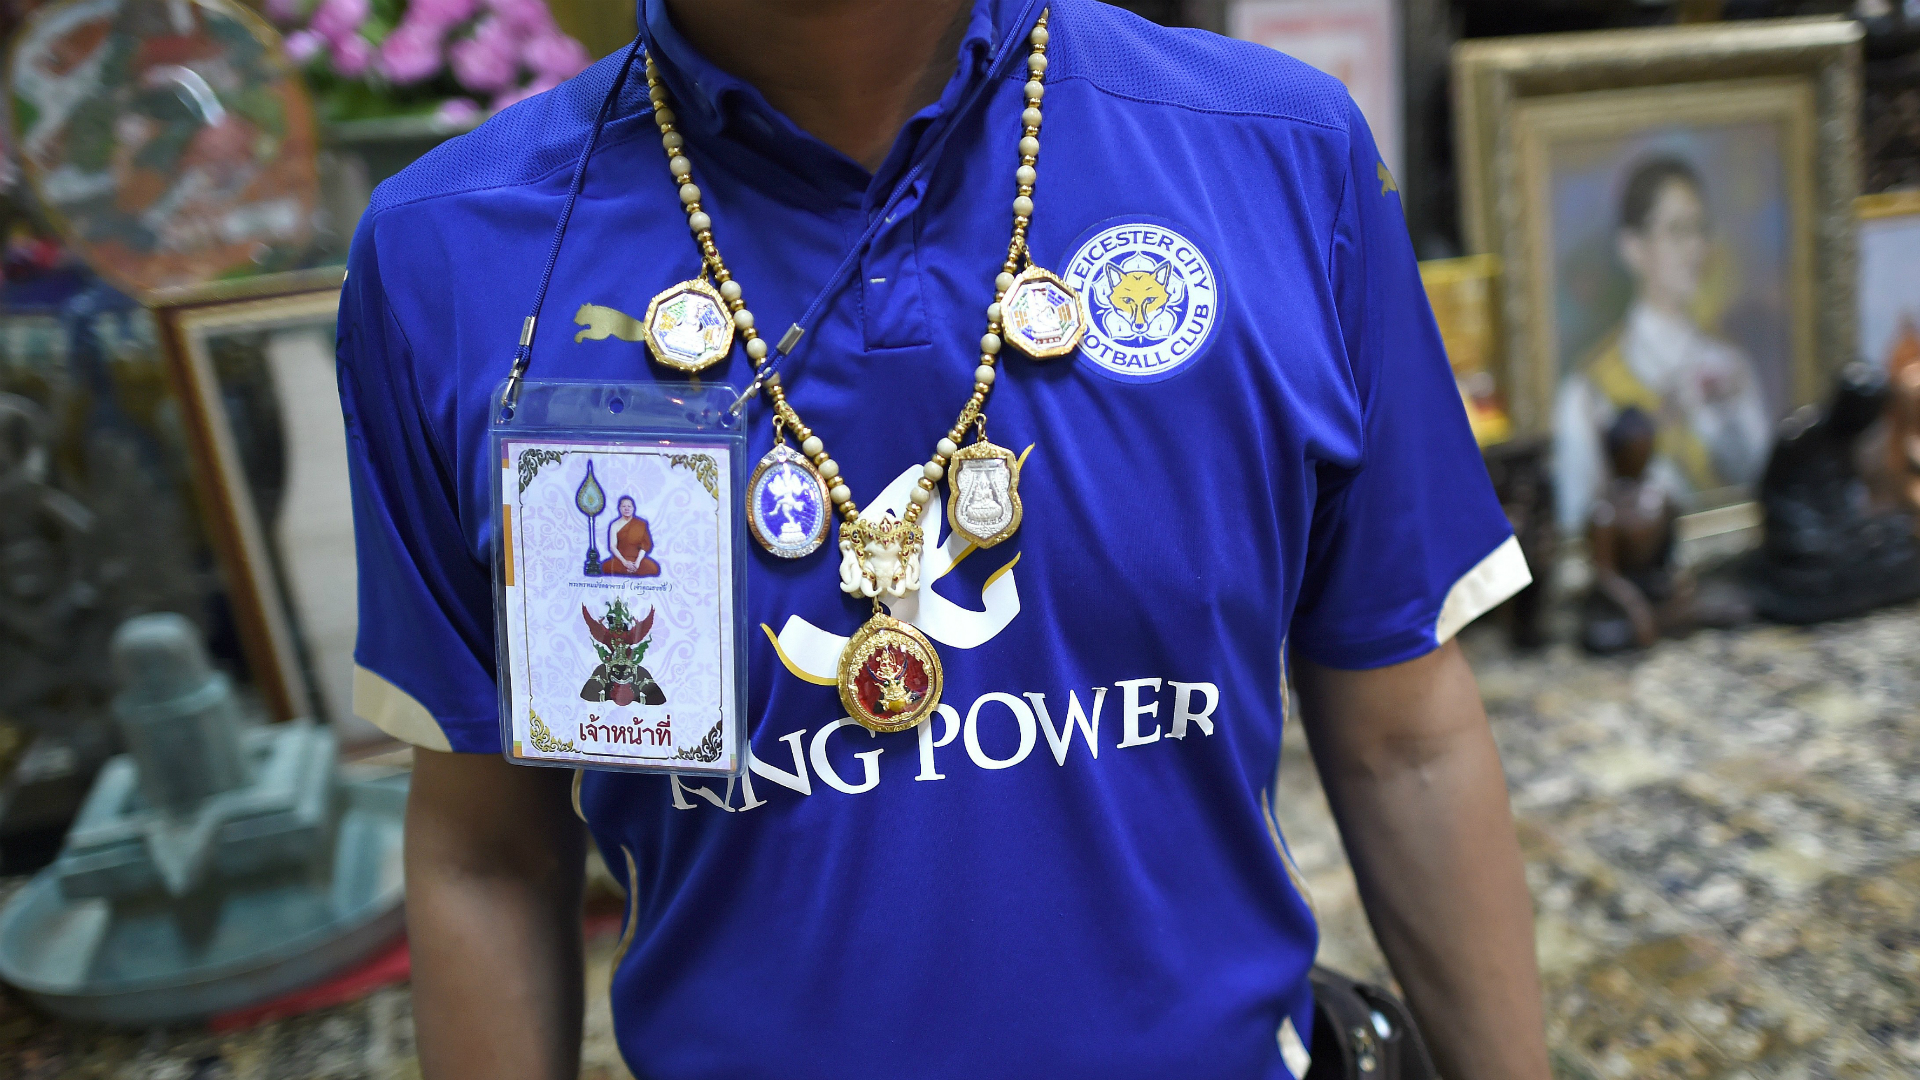 Leicester City's fairytale title bid secret revealed - News